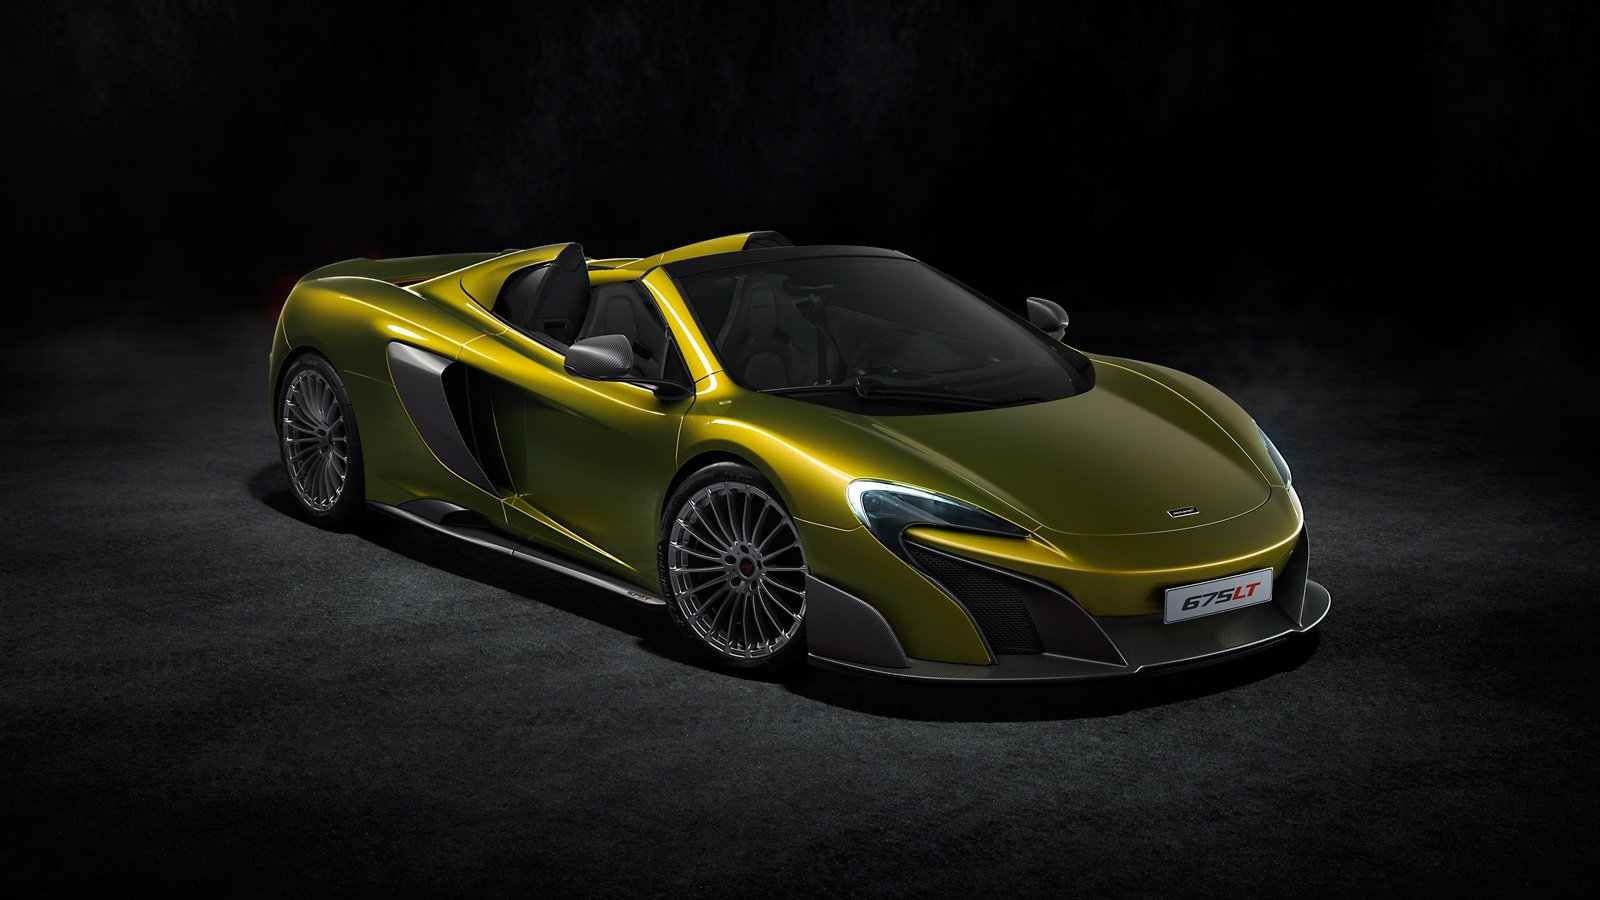 The McLaren 675LT Spider is Already Sold Out—Here's Why Everyone Wants One